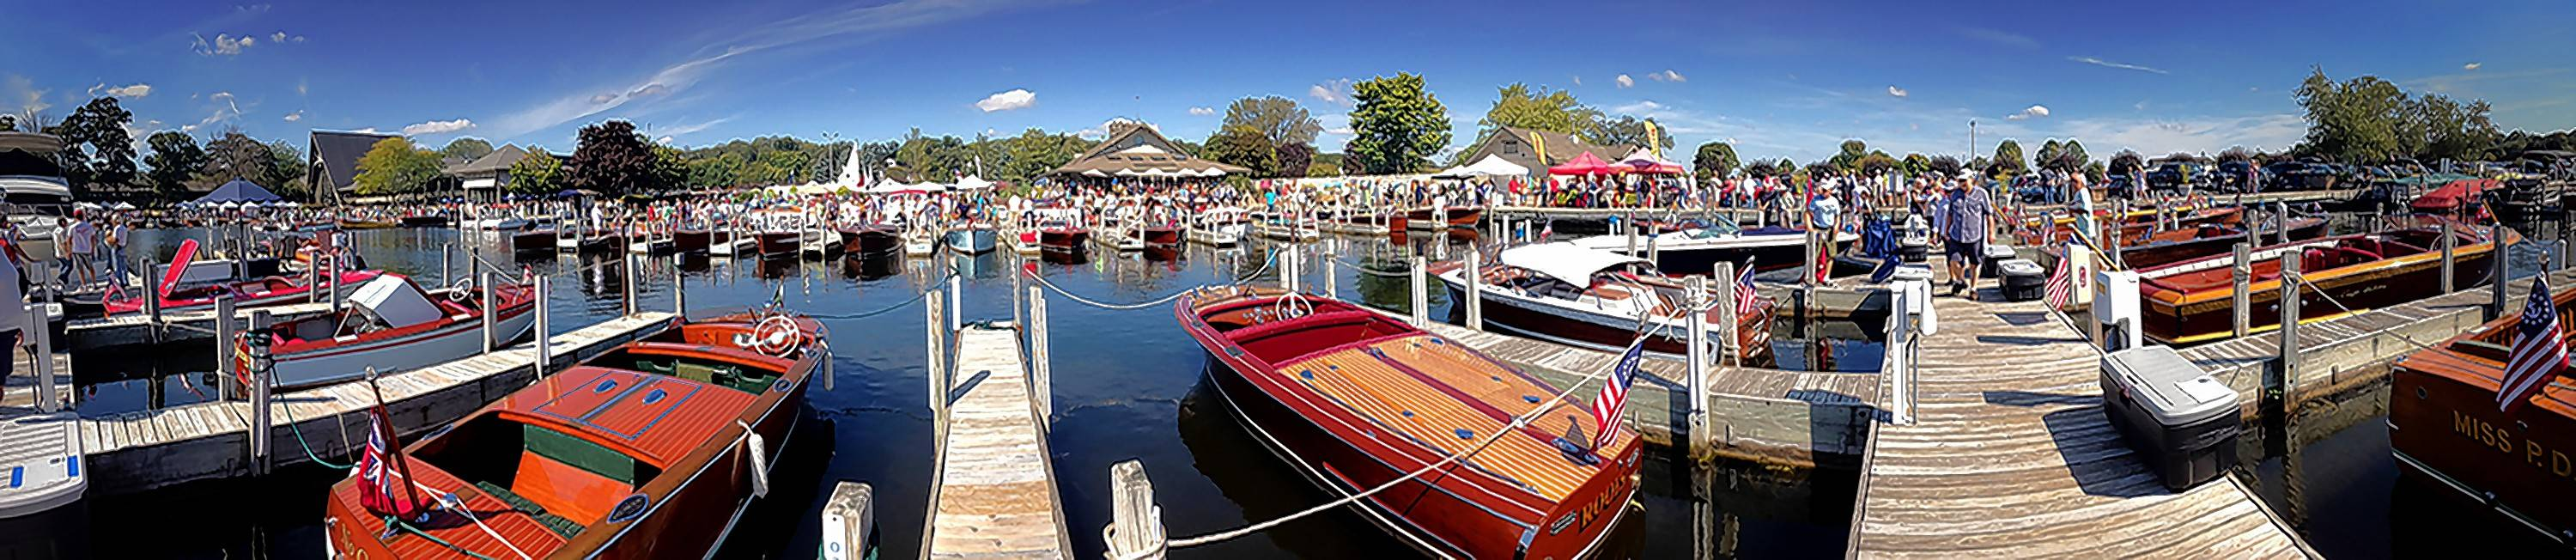 The Abbey Resort in Fontana, Wisconsin, hosted the 2015 Geneva Lakes Antique and Classic Boat Show.